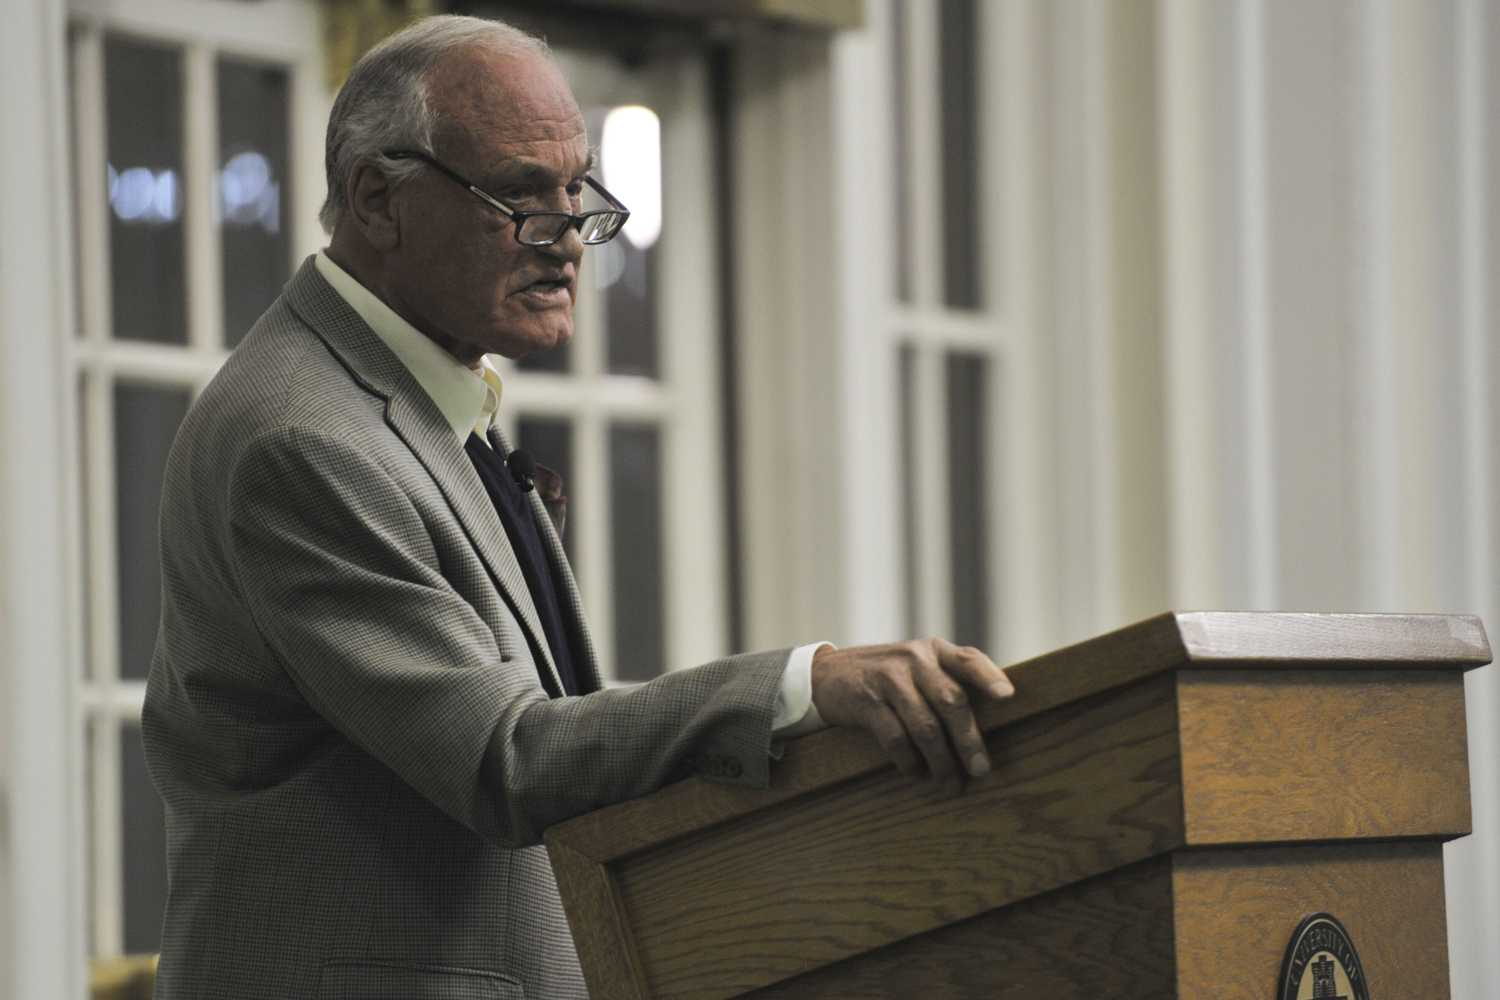 Barry Goldwater Jr., son of former Arizona senator Barry Goldwater, talked about his childhood in the limelight and opinions on current politics Thursday evening.  (Photo by Sarah Cutshall | Staff Photographer)